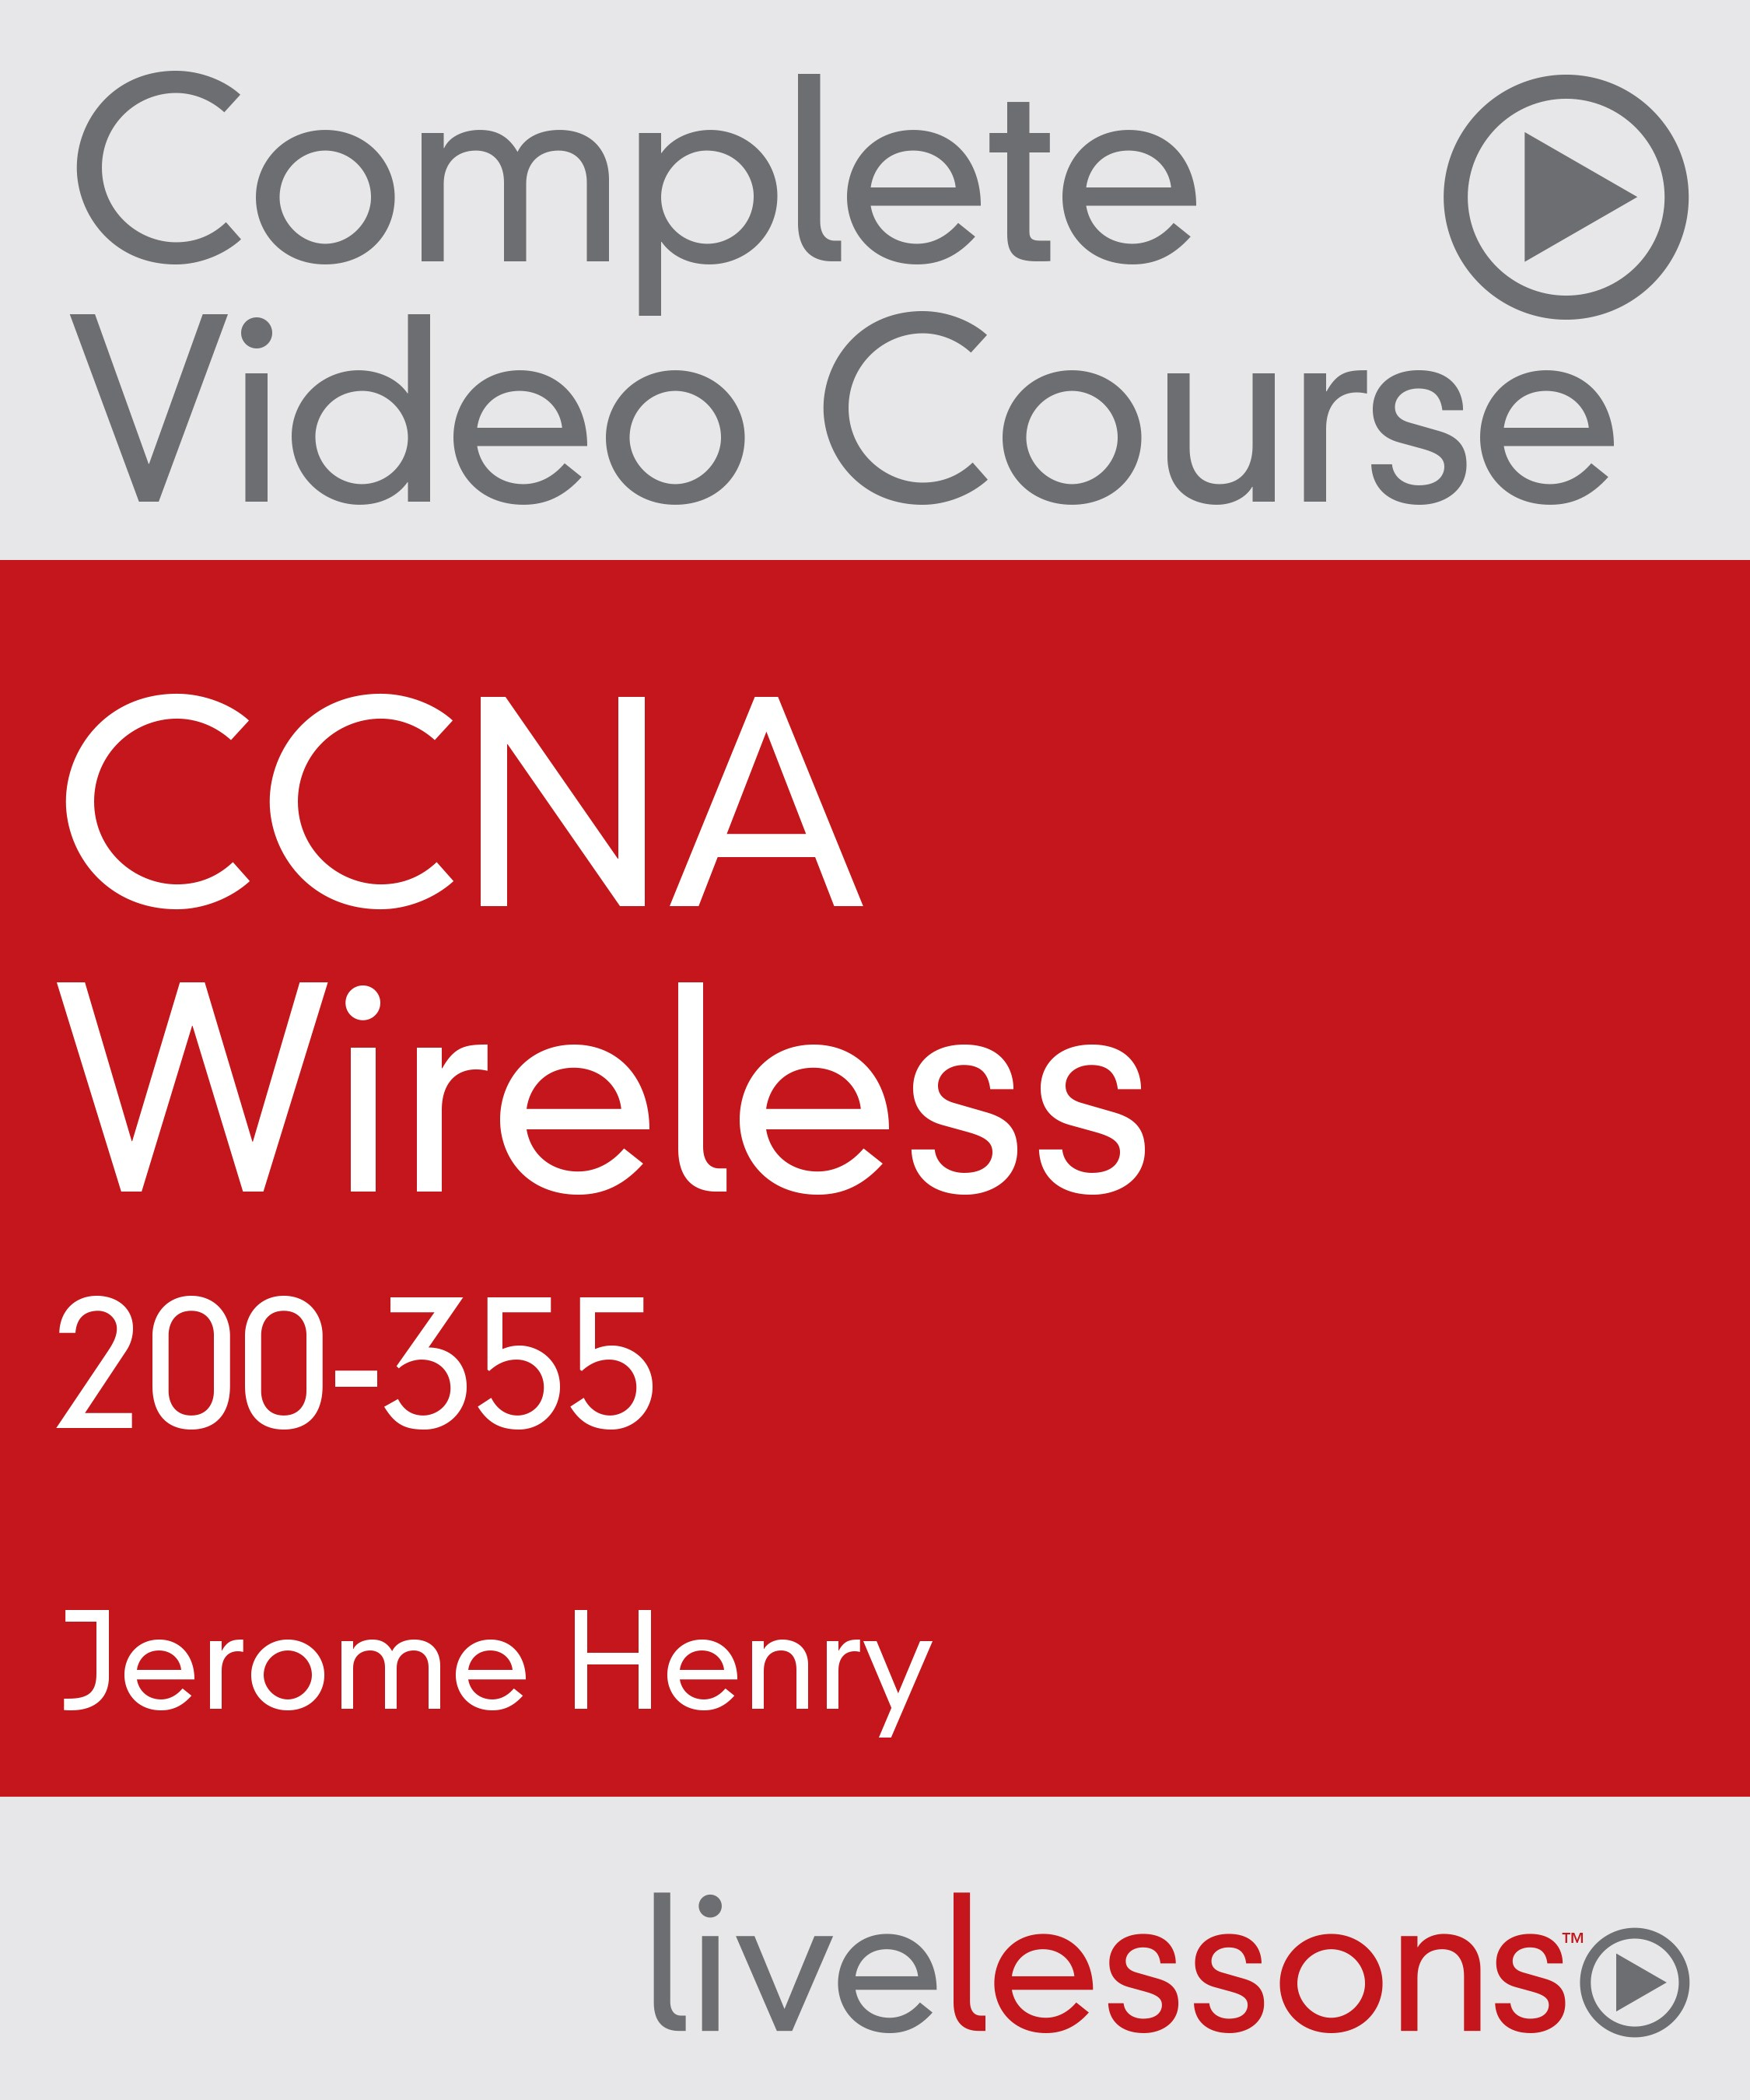 CCNA Wireless 200-355 Complete Video Course